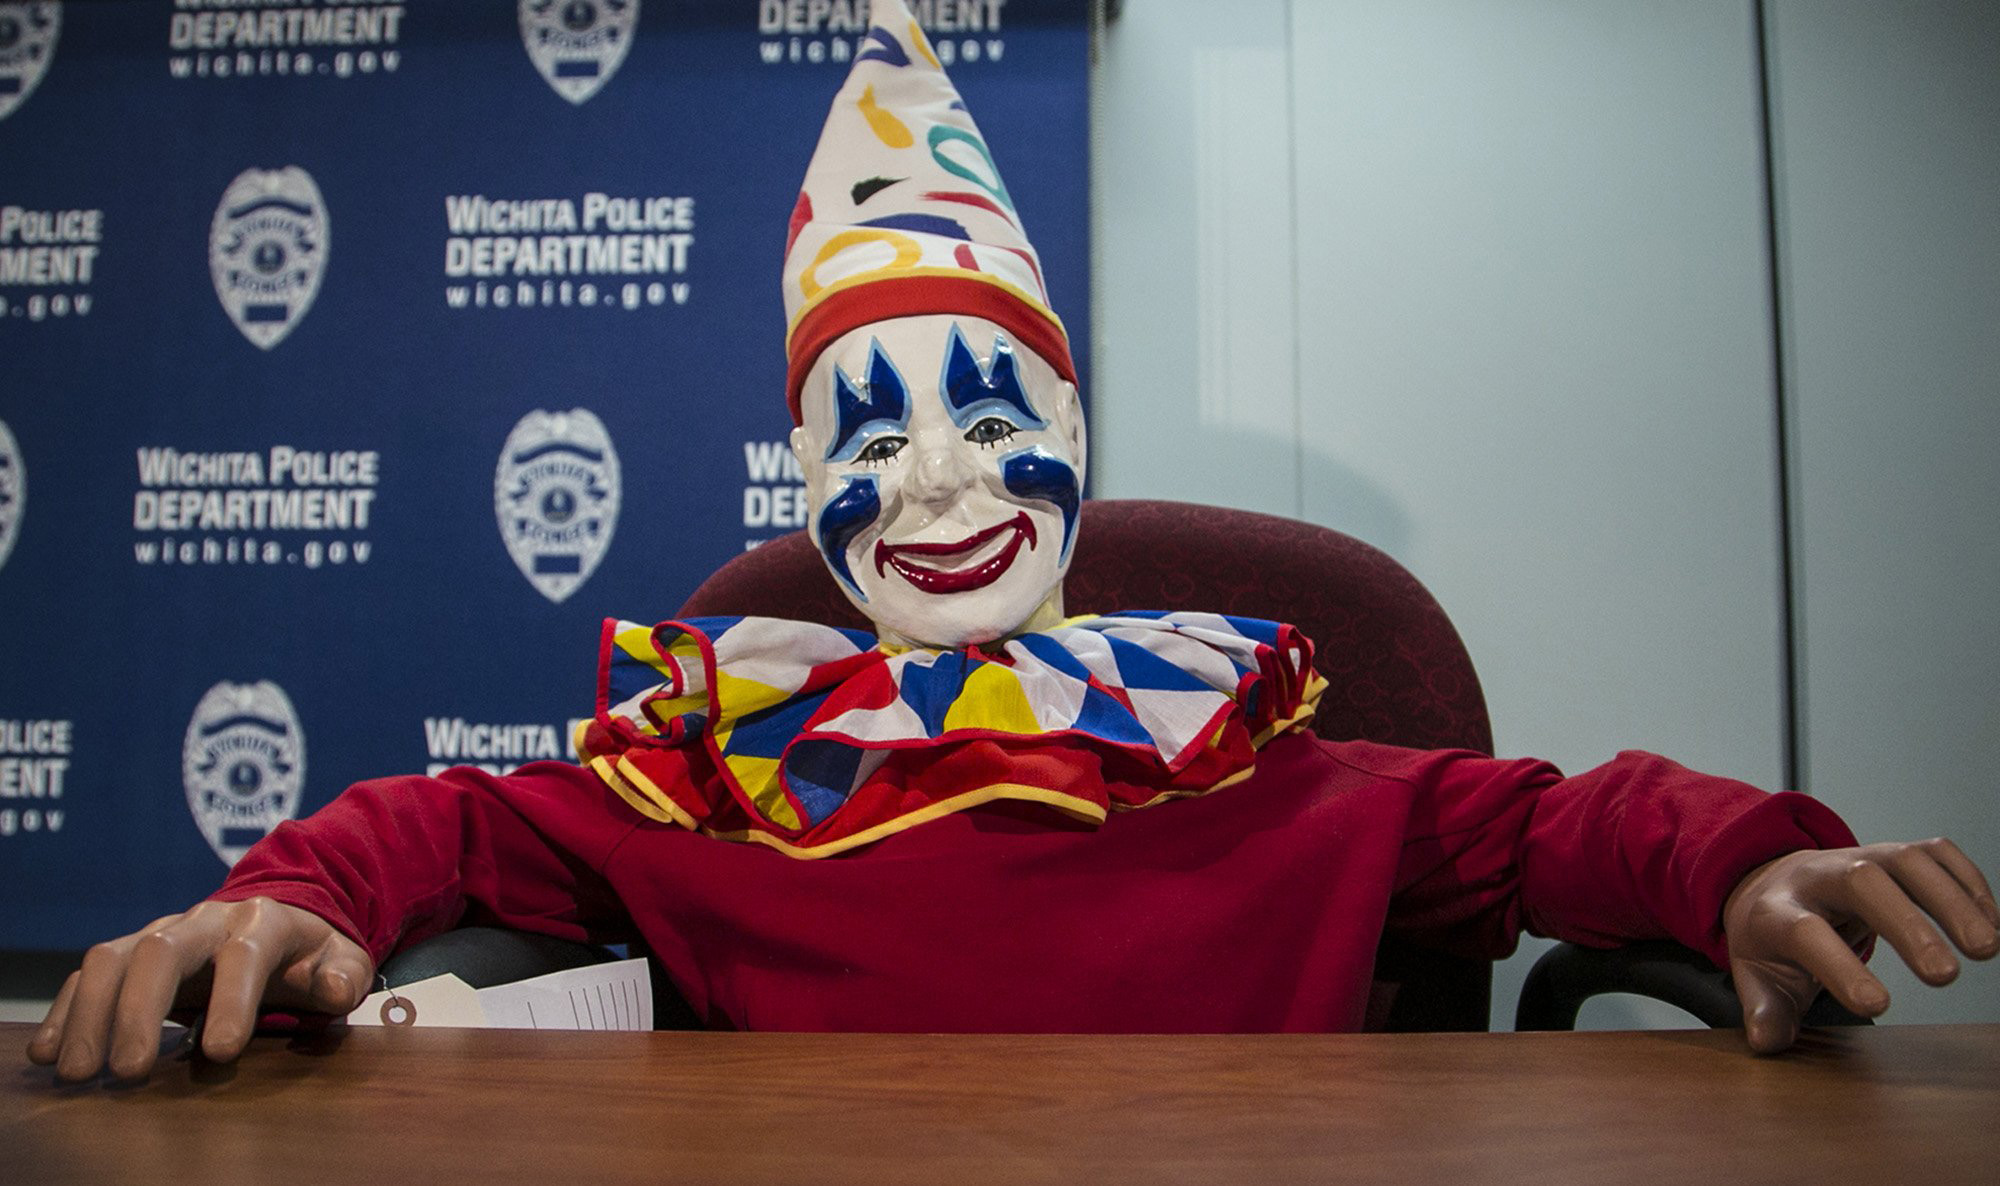 Joyland's organ-playing mascot Louie the Clown appears at a daily police briefing in the Wichita City Hall police headquarters, Thursday, Feb. 19, 2015, in Wichita, Kan.